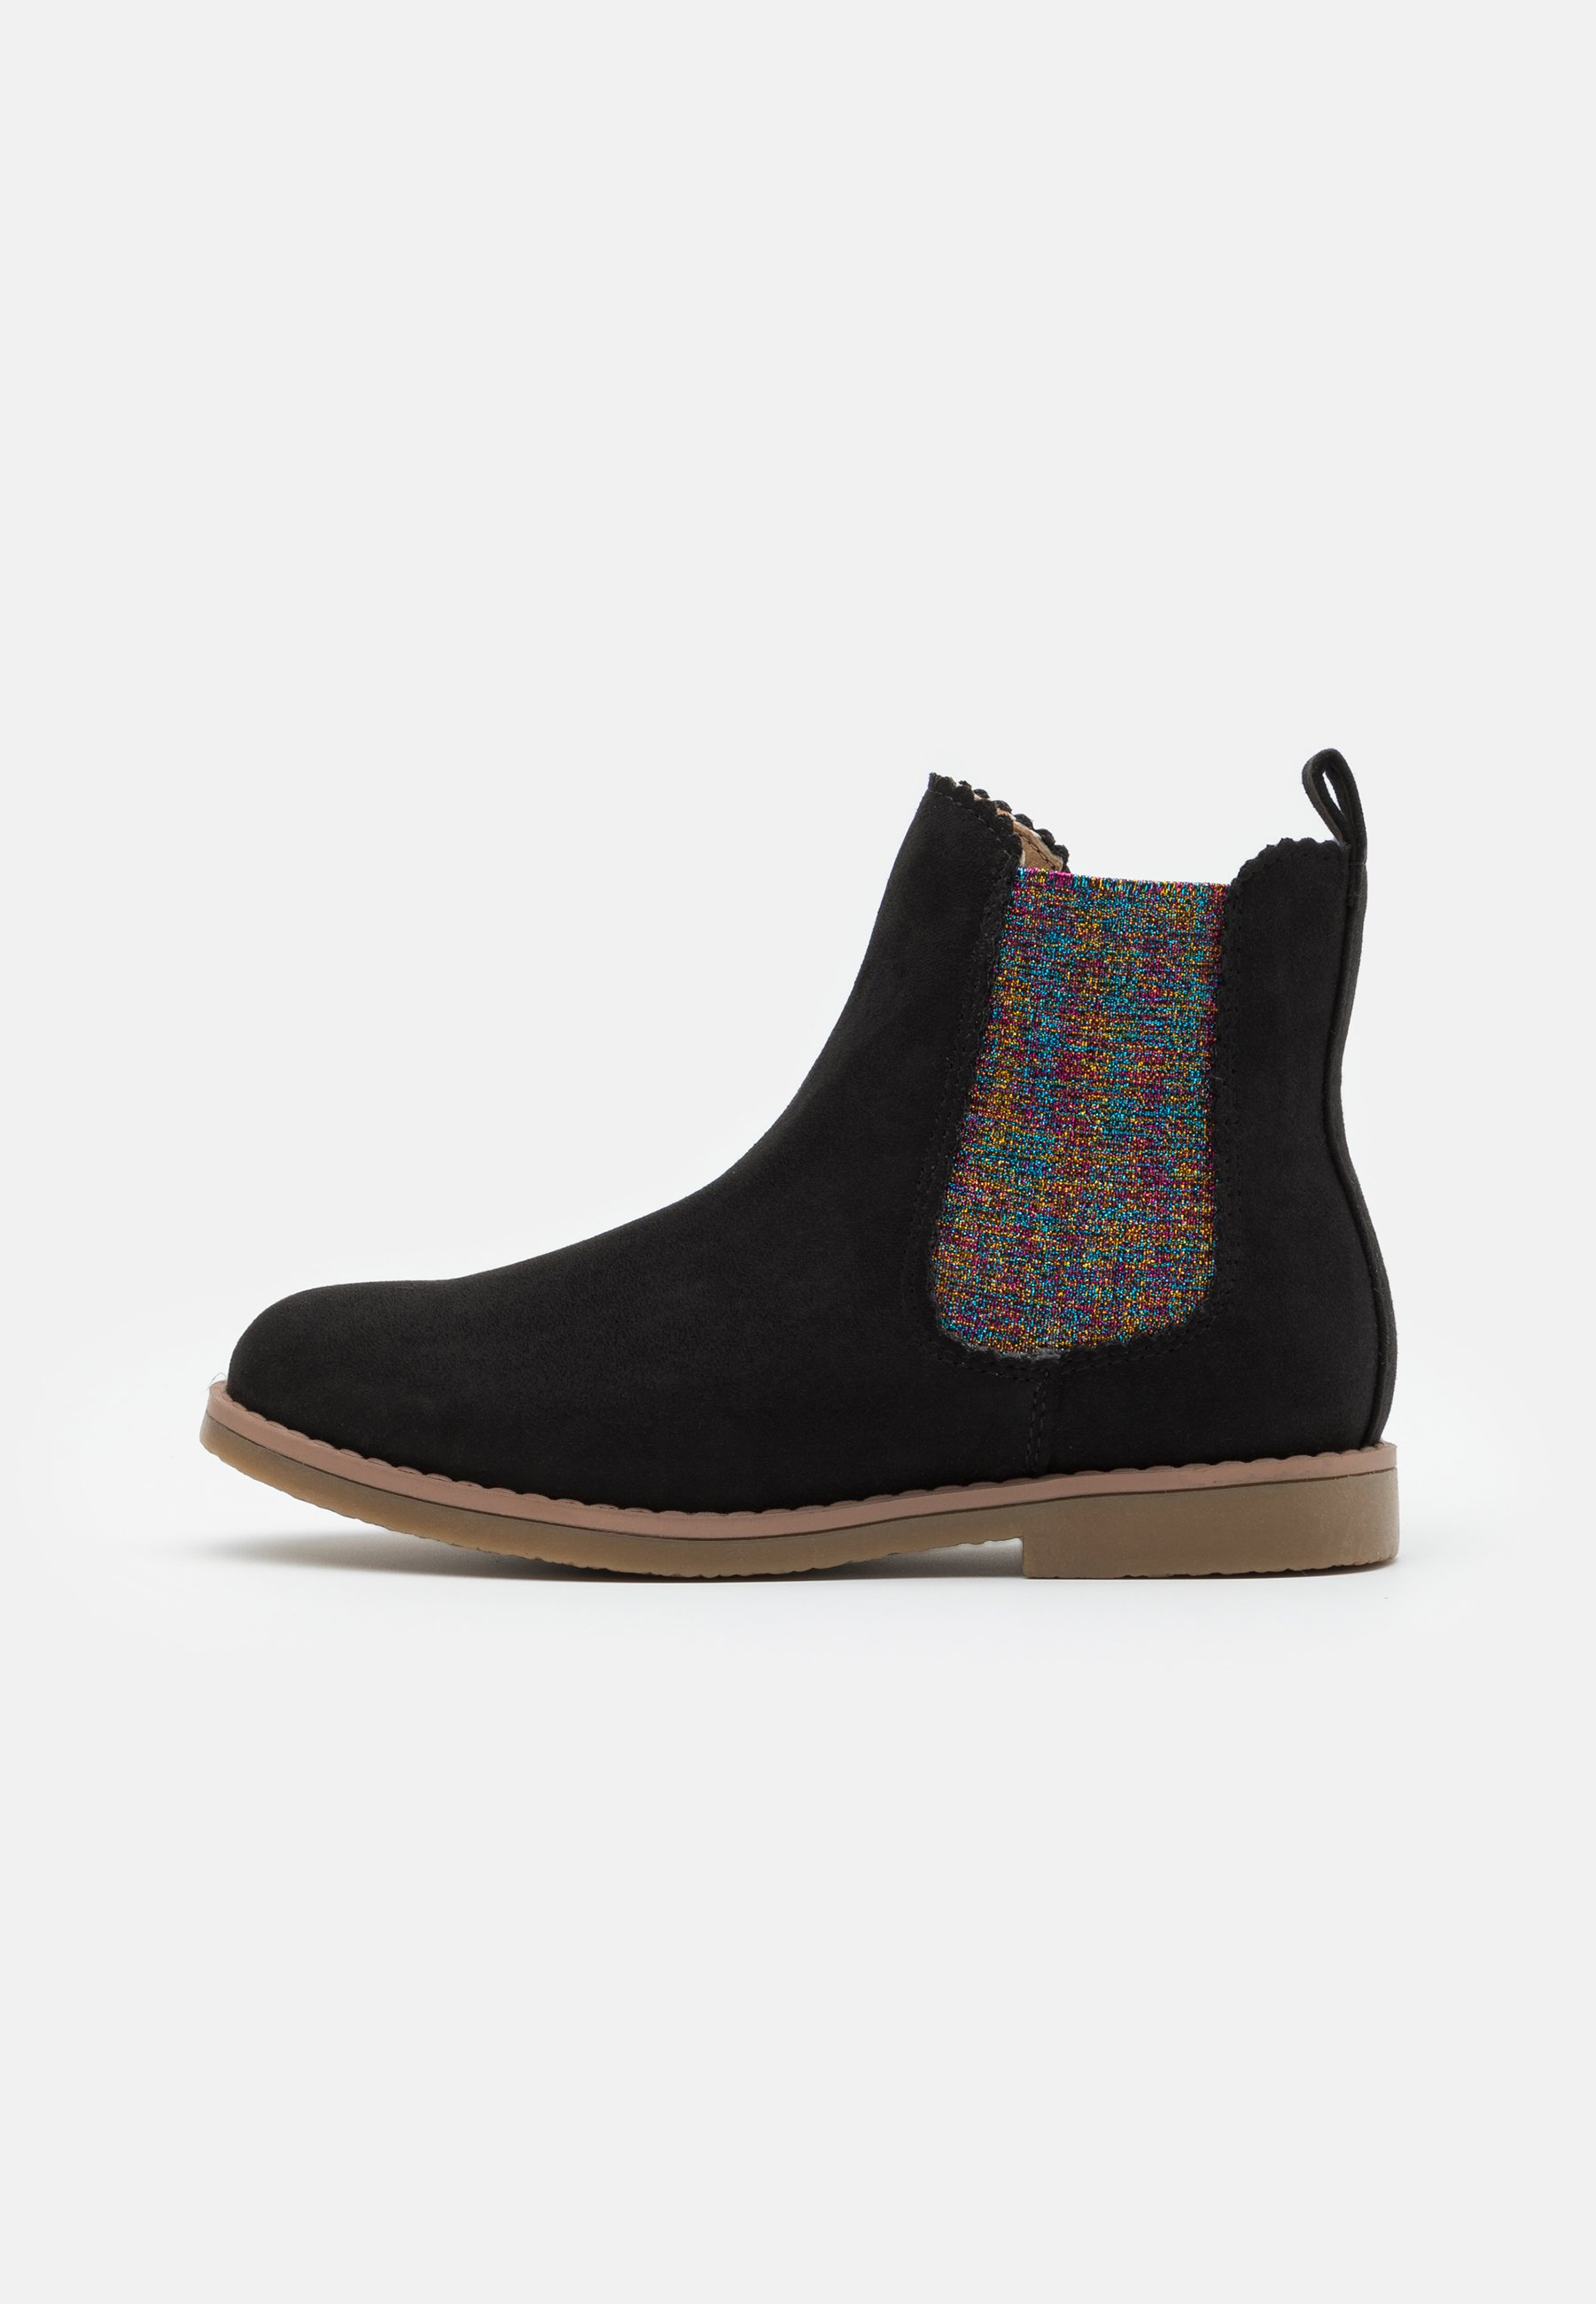 Kids SCALLOP GUSSET BOOT - Classic ankle boots - washed black/rainbow scallop